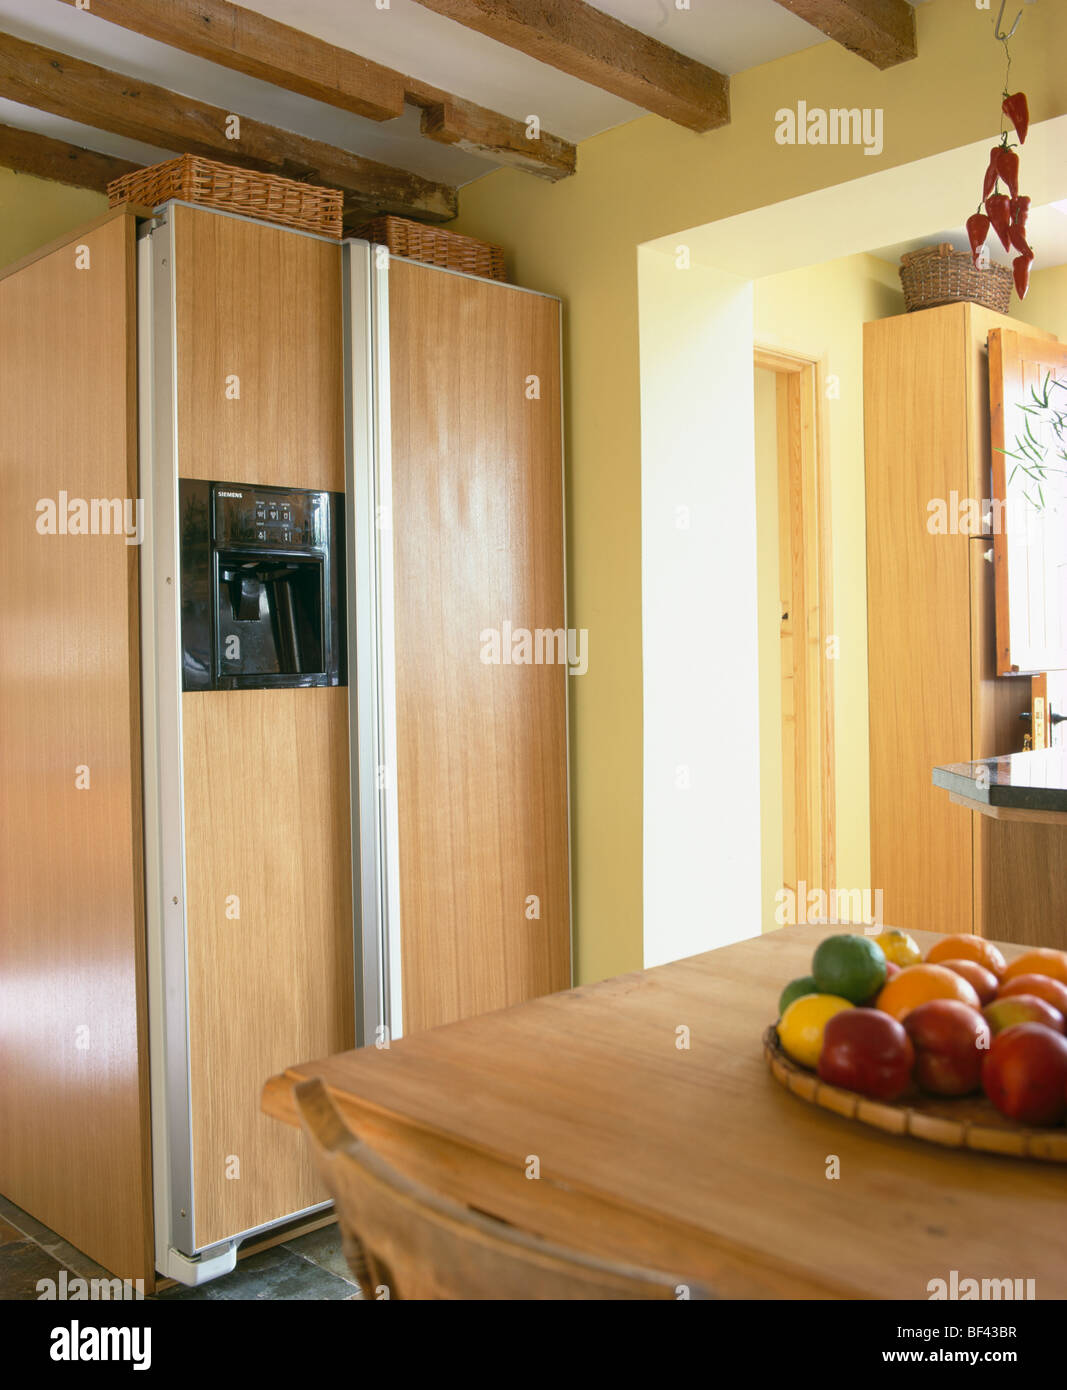 Sell Kitchen Cabinets Large American Style Fridge Freezer In Modern Fitted